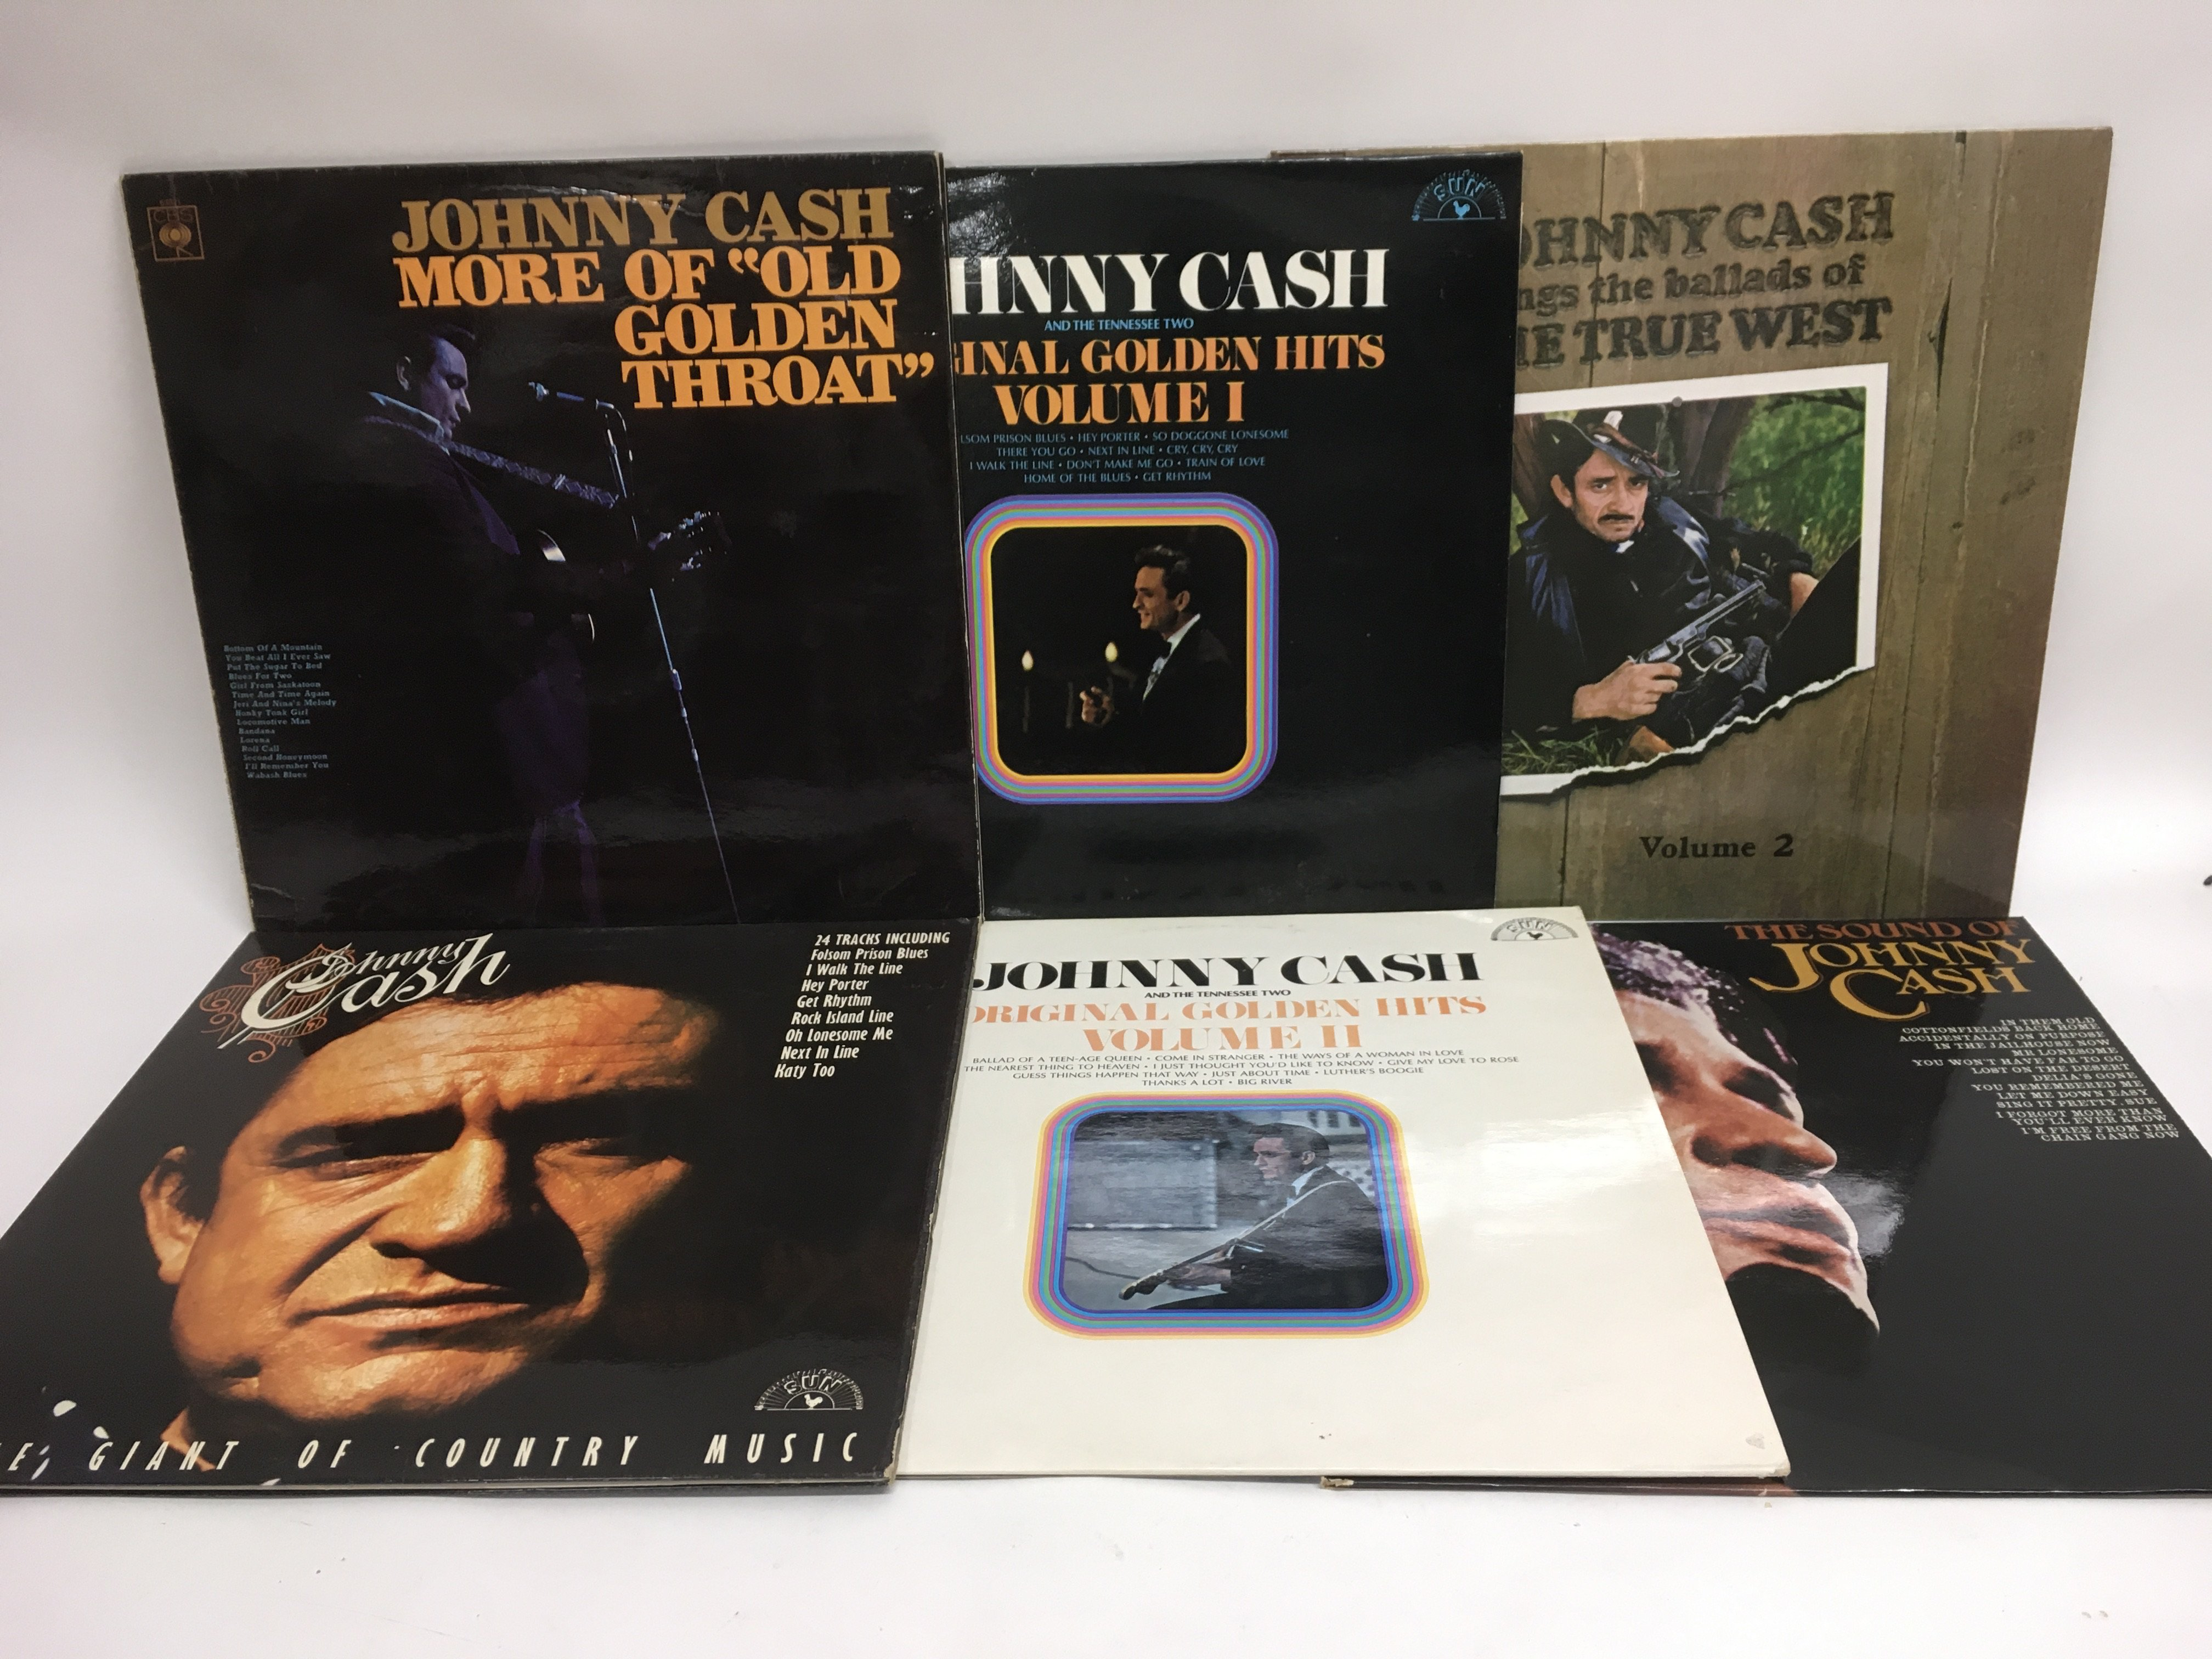 Sixteen Johnny Cash LPs. - Image 2 of 2